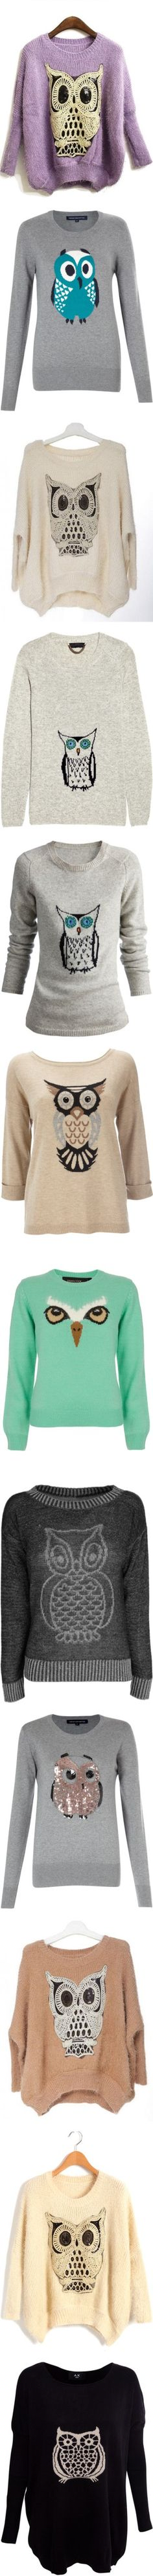 yes! wear all of the owls!